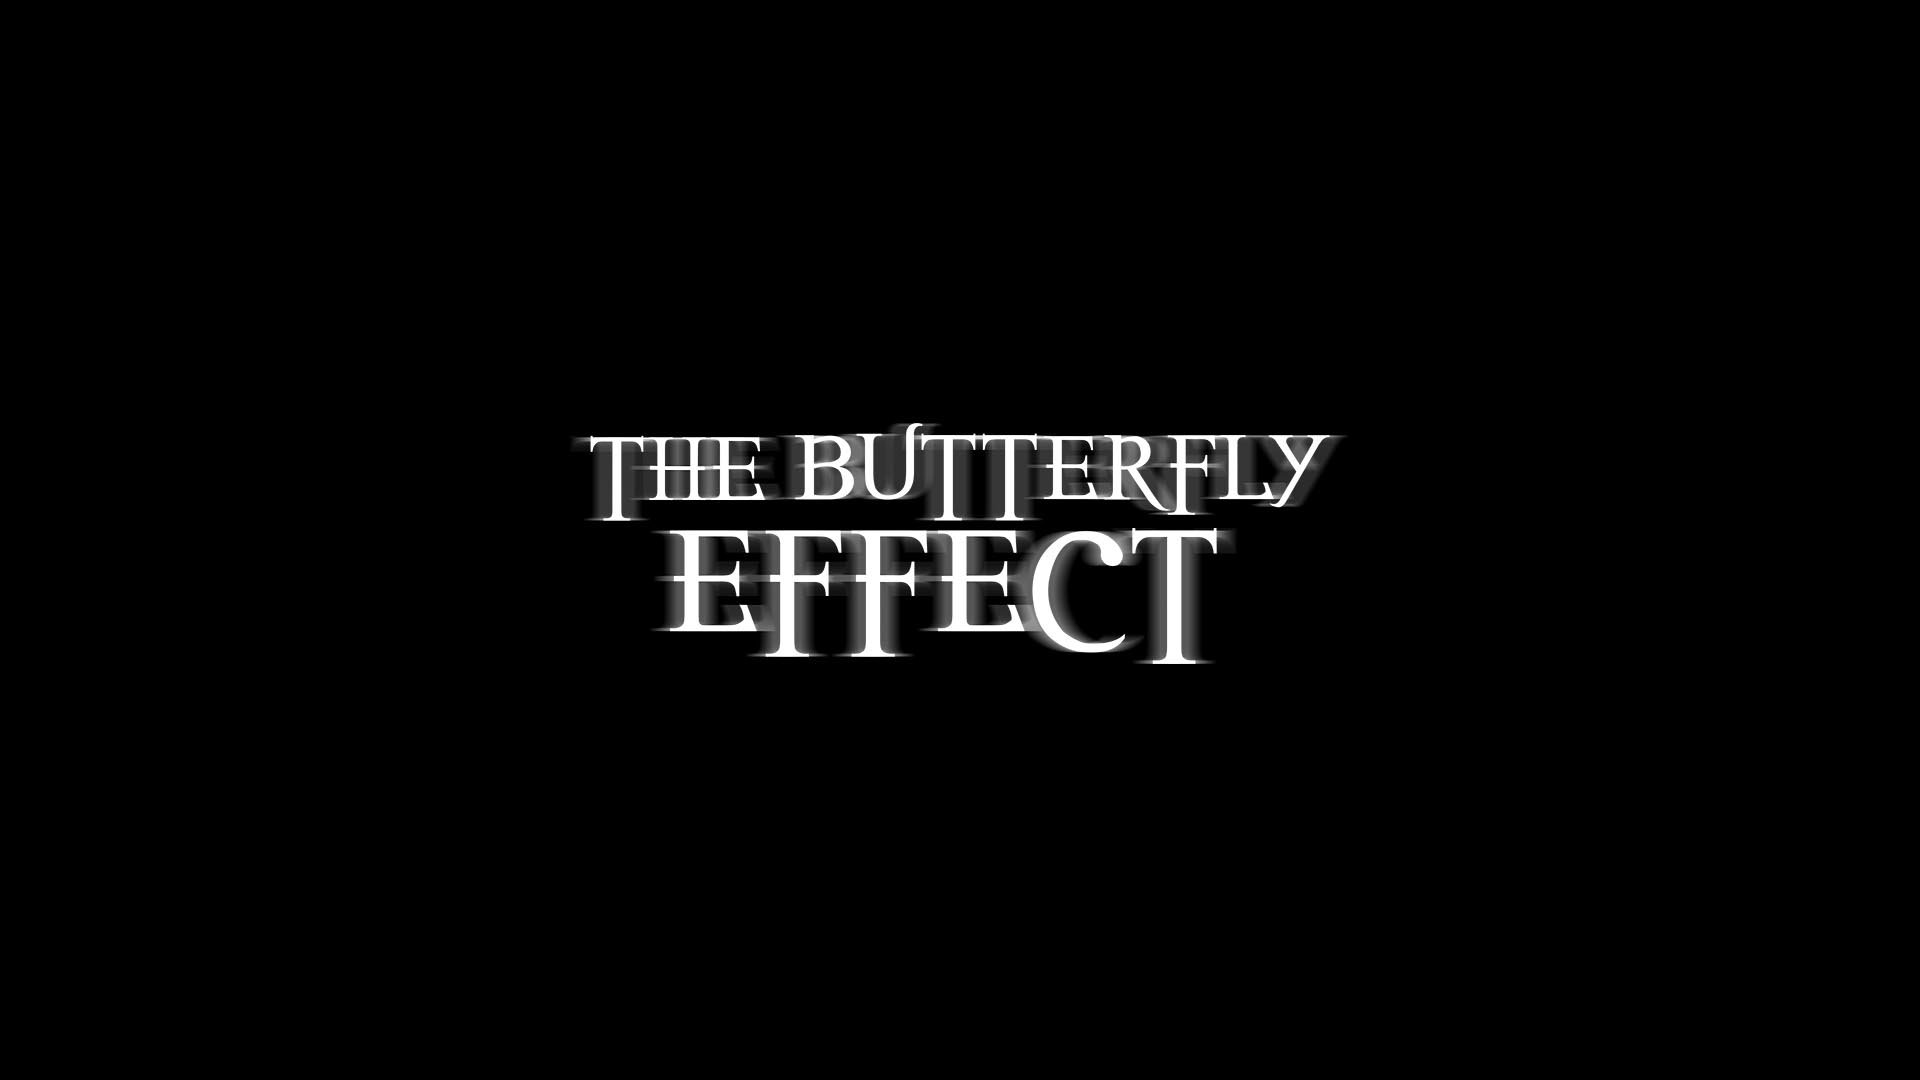 4 The Butterfly Effect HD Wallpapers Background Images 1920x1080